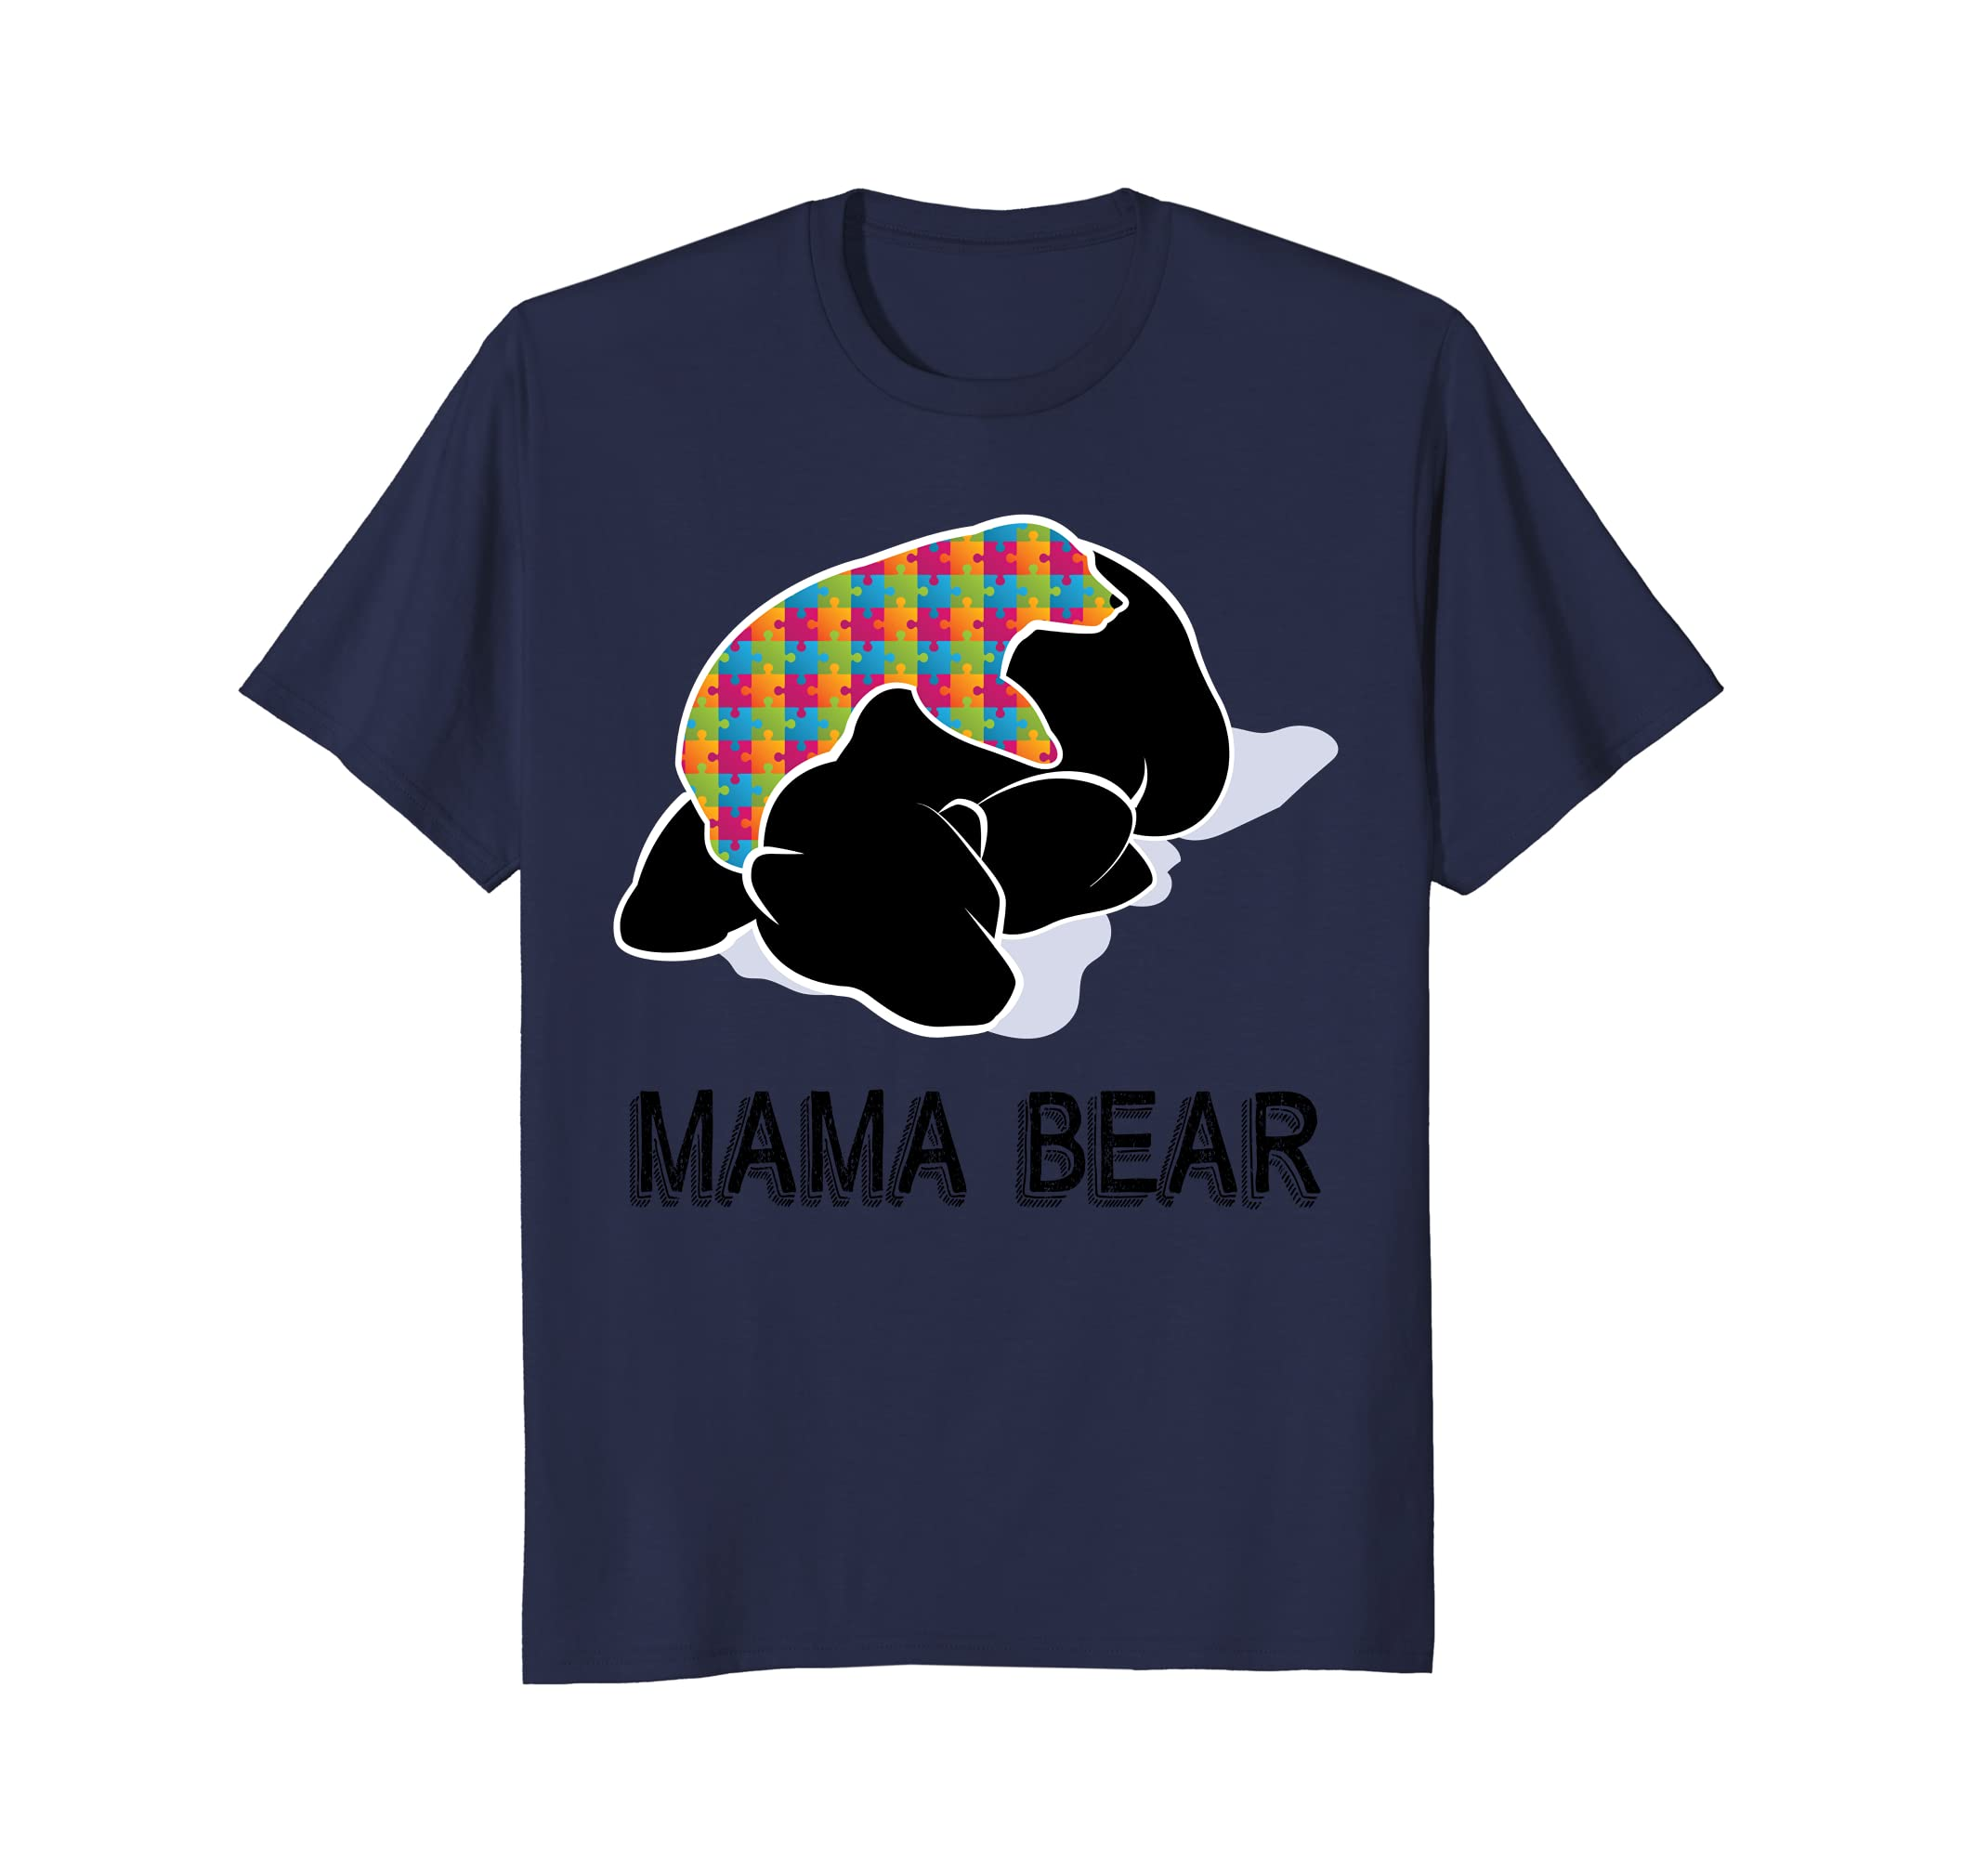 '2018 Autism Awareness Mom' Awesome Autism Mama Bear Shirt-ah my shirt one gift